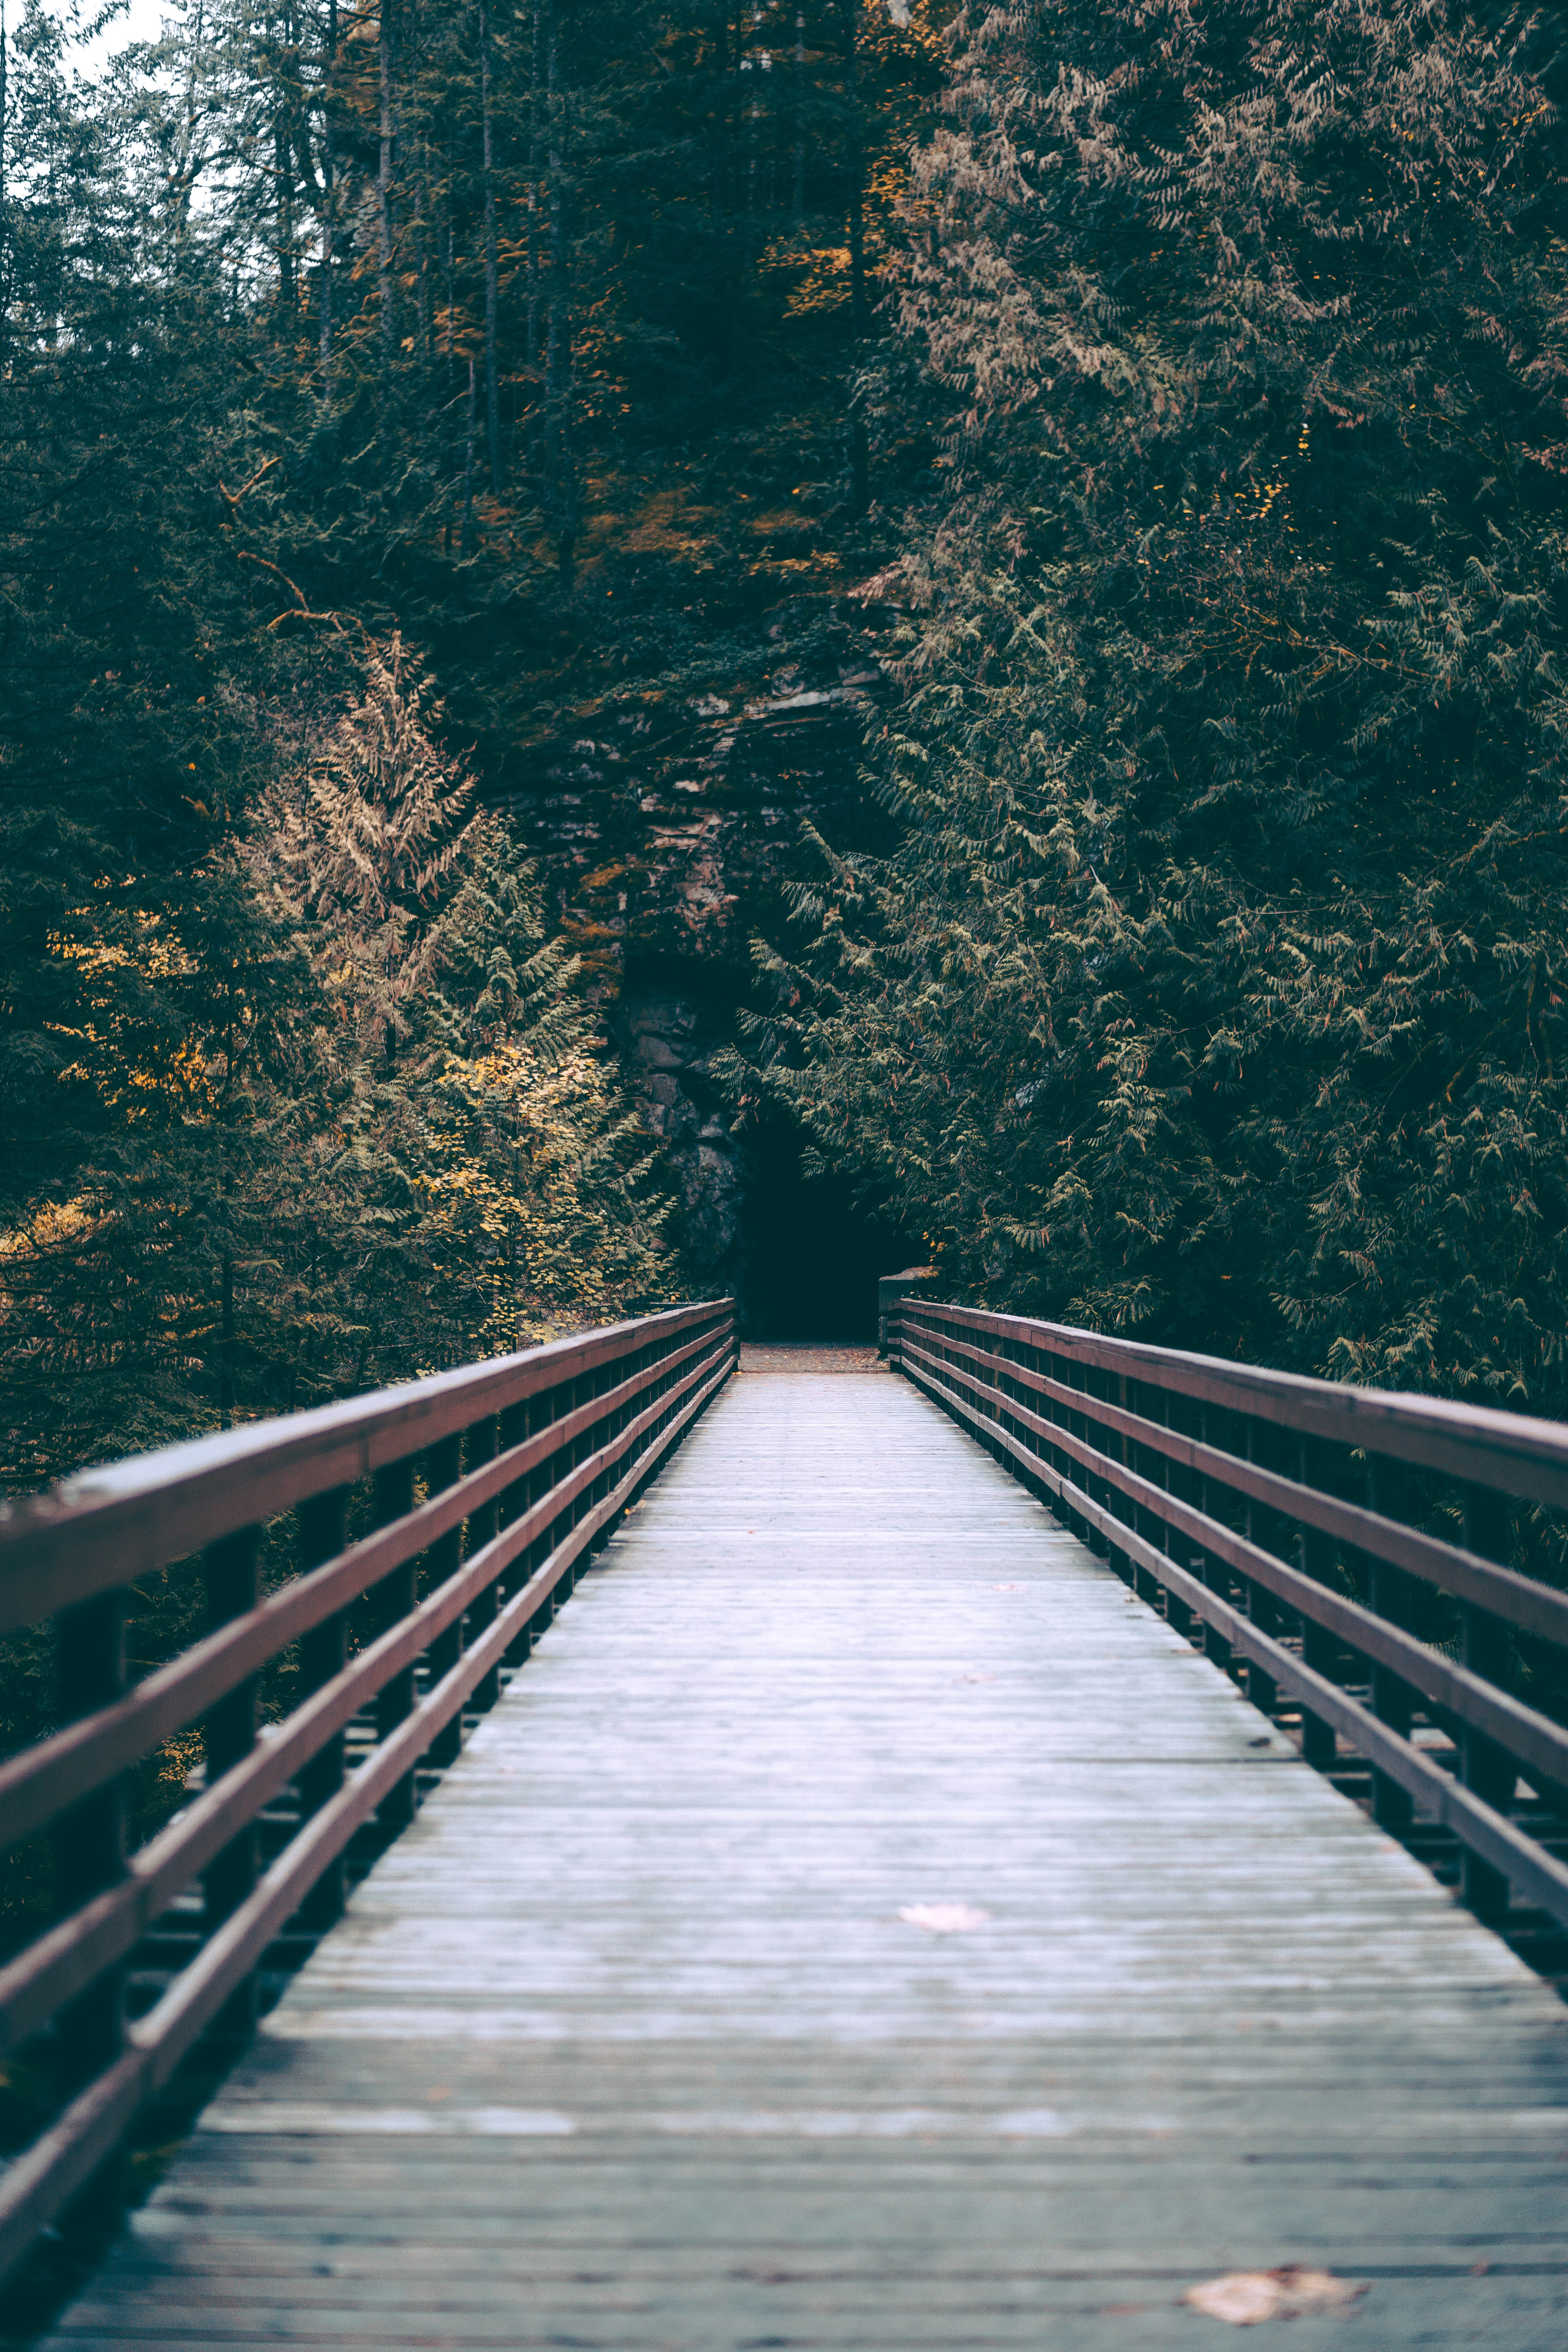 tilt-shift lens architectural photography of brown wooden footbridge leading to forest during daytime